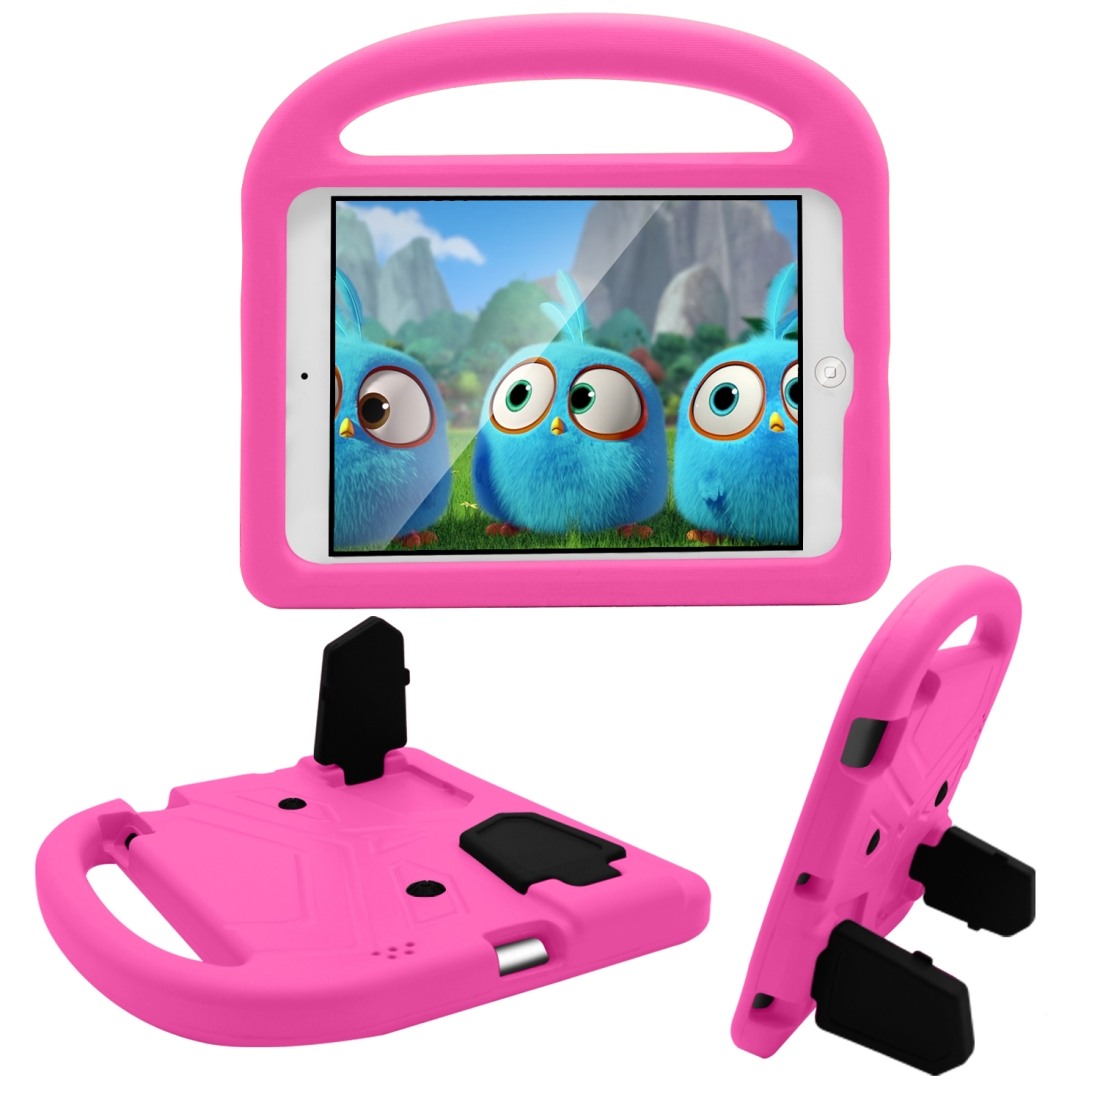 iPad Cover For Kids, Fits iPad 2/3/4 With A Kid Friendly Durable Shockproof EVA Design (Rose Pink)